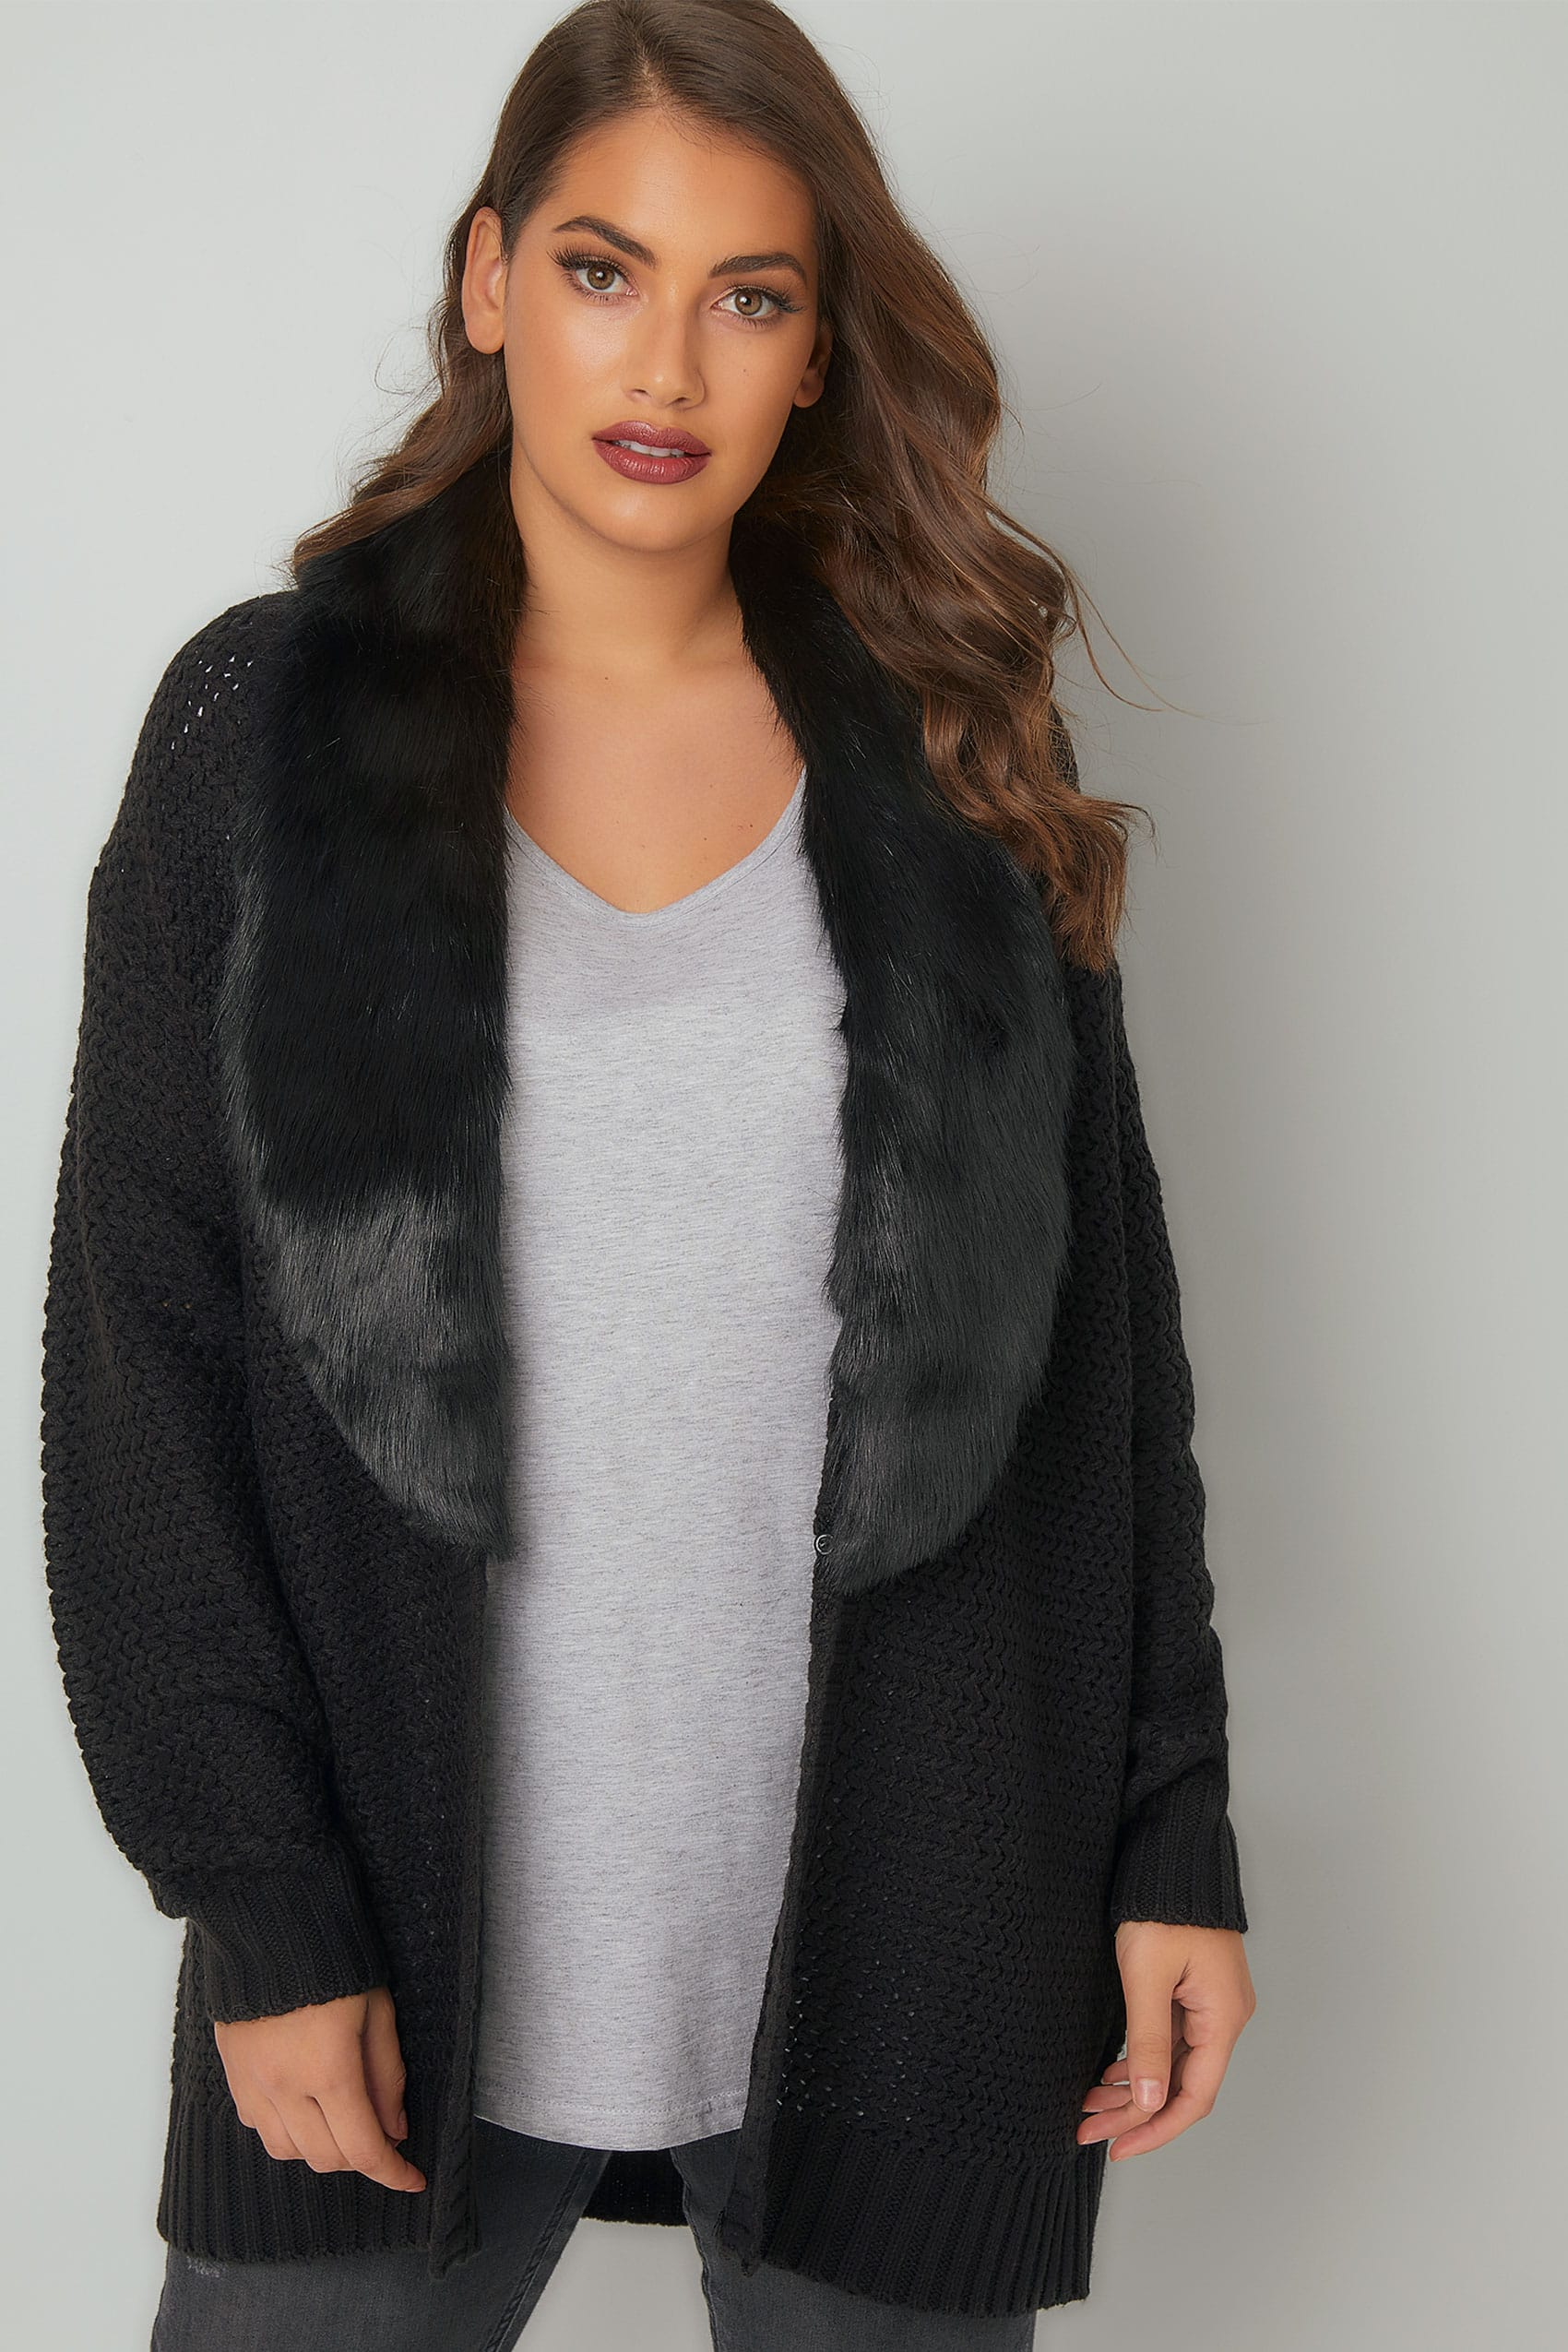 Fine gauge V-neck cardigan topped with a removable faux fur collar. % Rayon. Hand wash or dry clean. Imported. Close stretch fit. Wear with the faux fur collar or without for a classic V-neck silhouette. Collar attaches with buttons. Silvertone snaps close the ribbon-lined placket. 3/4-length sleeves. Ribbon-covered neck seam.